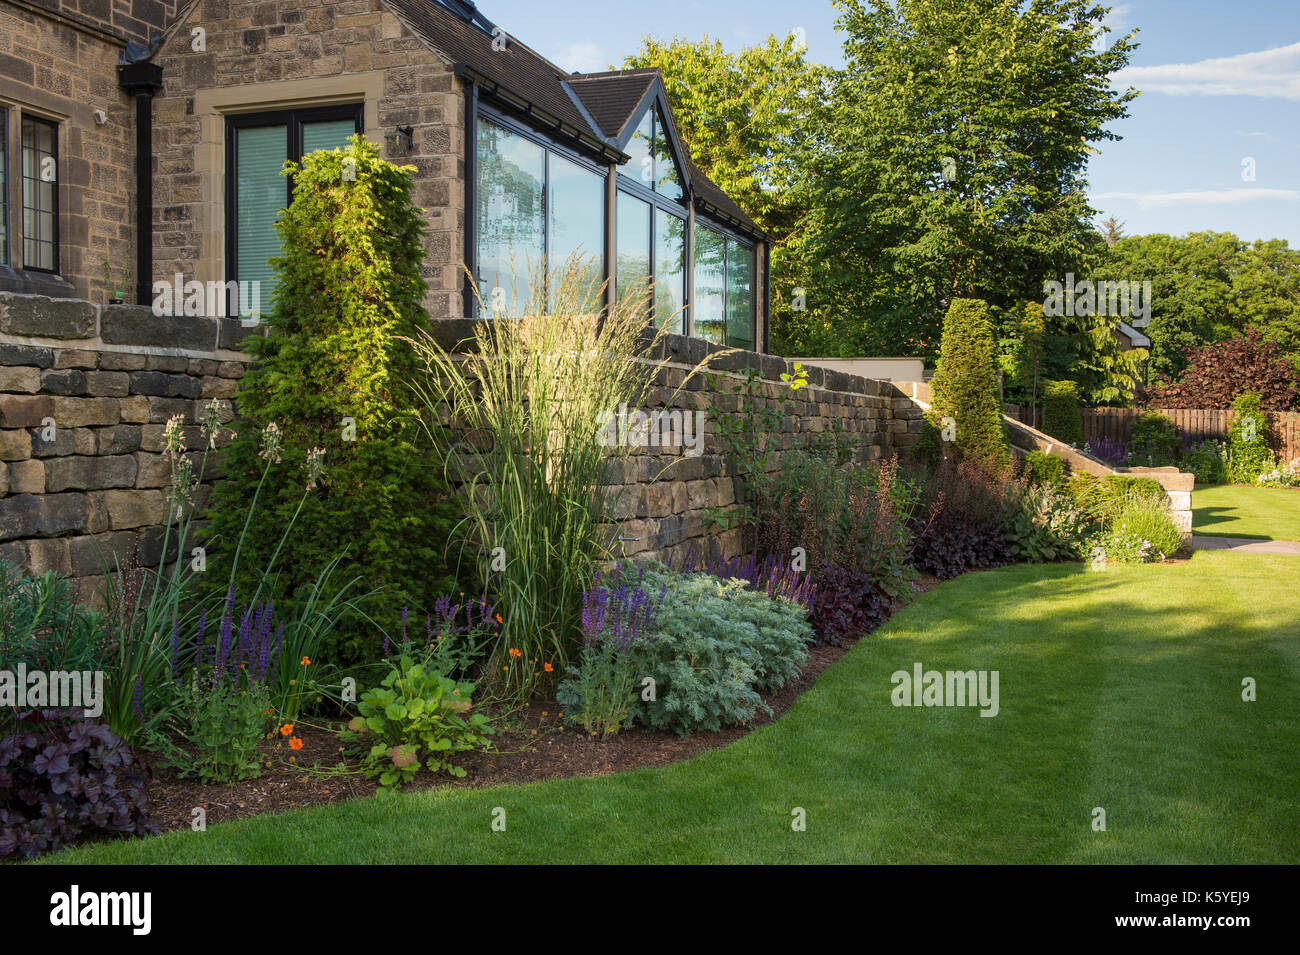 Beautiful, private, traditional, landscaped, country garden, West Yorkshire, England, UK - summer flowering plants on herbaceous border by house. - Stock Image